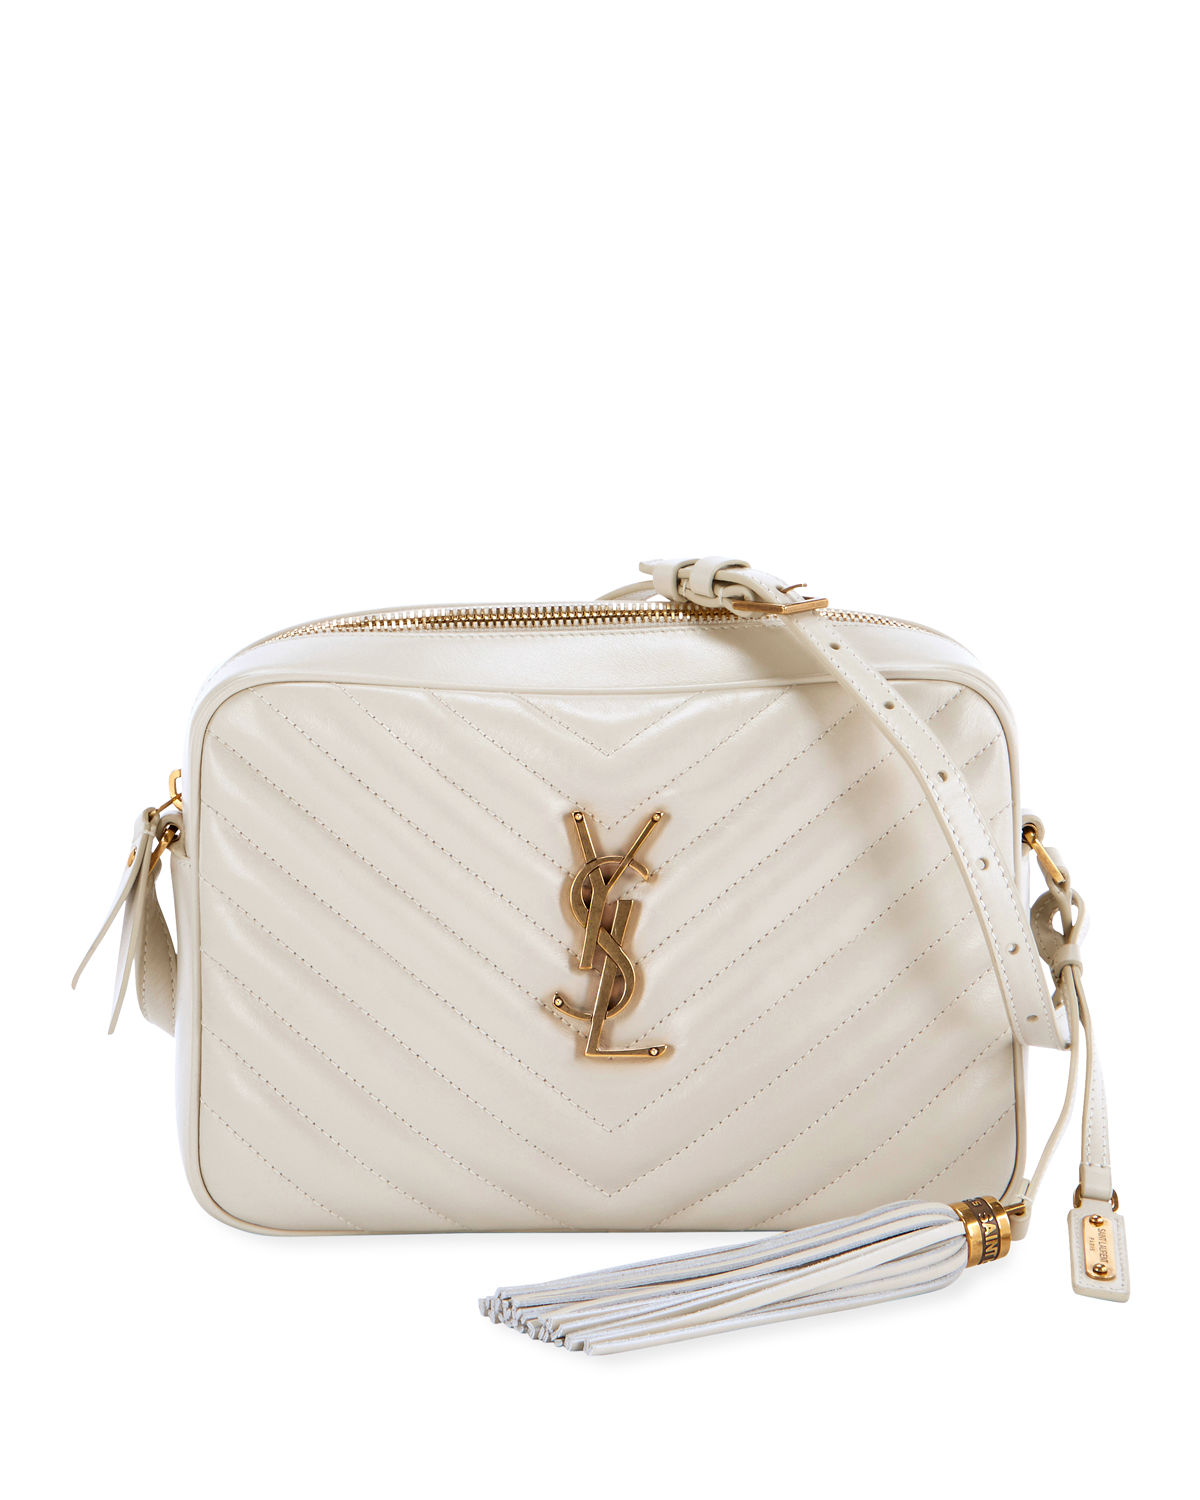 c92326addbec Saint Laurent Loulou Monogram Ysl Medium Chevron Quilted Leather Camera Shoulder  Bag - Brilliant Golden Hardware